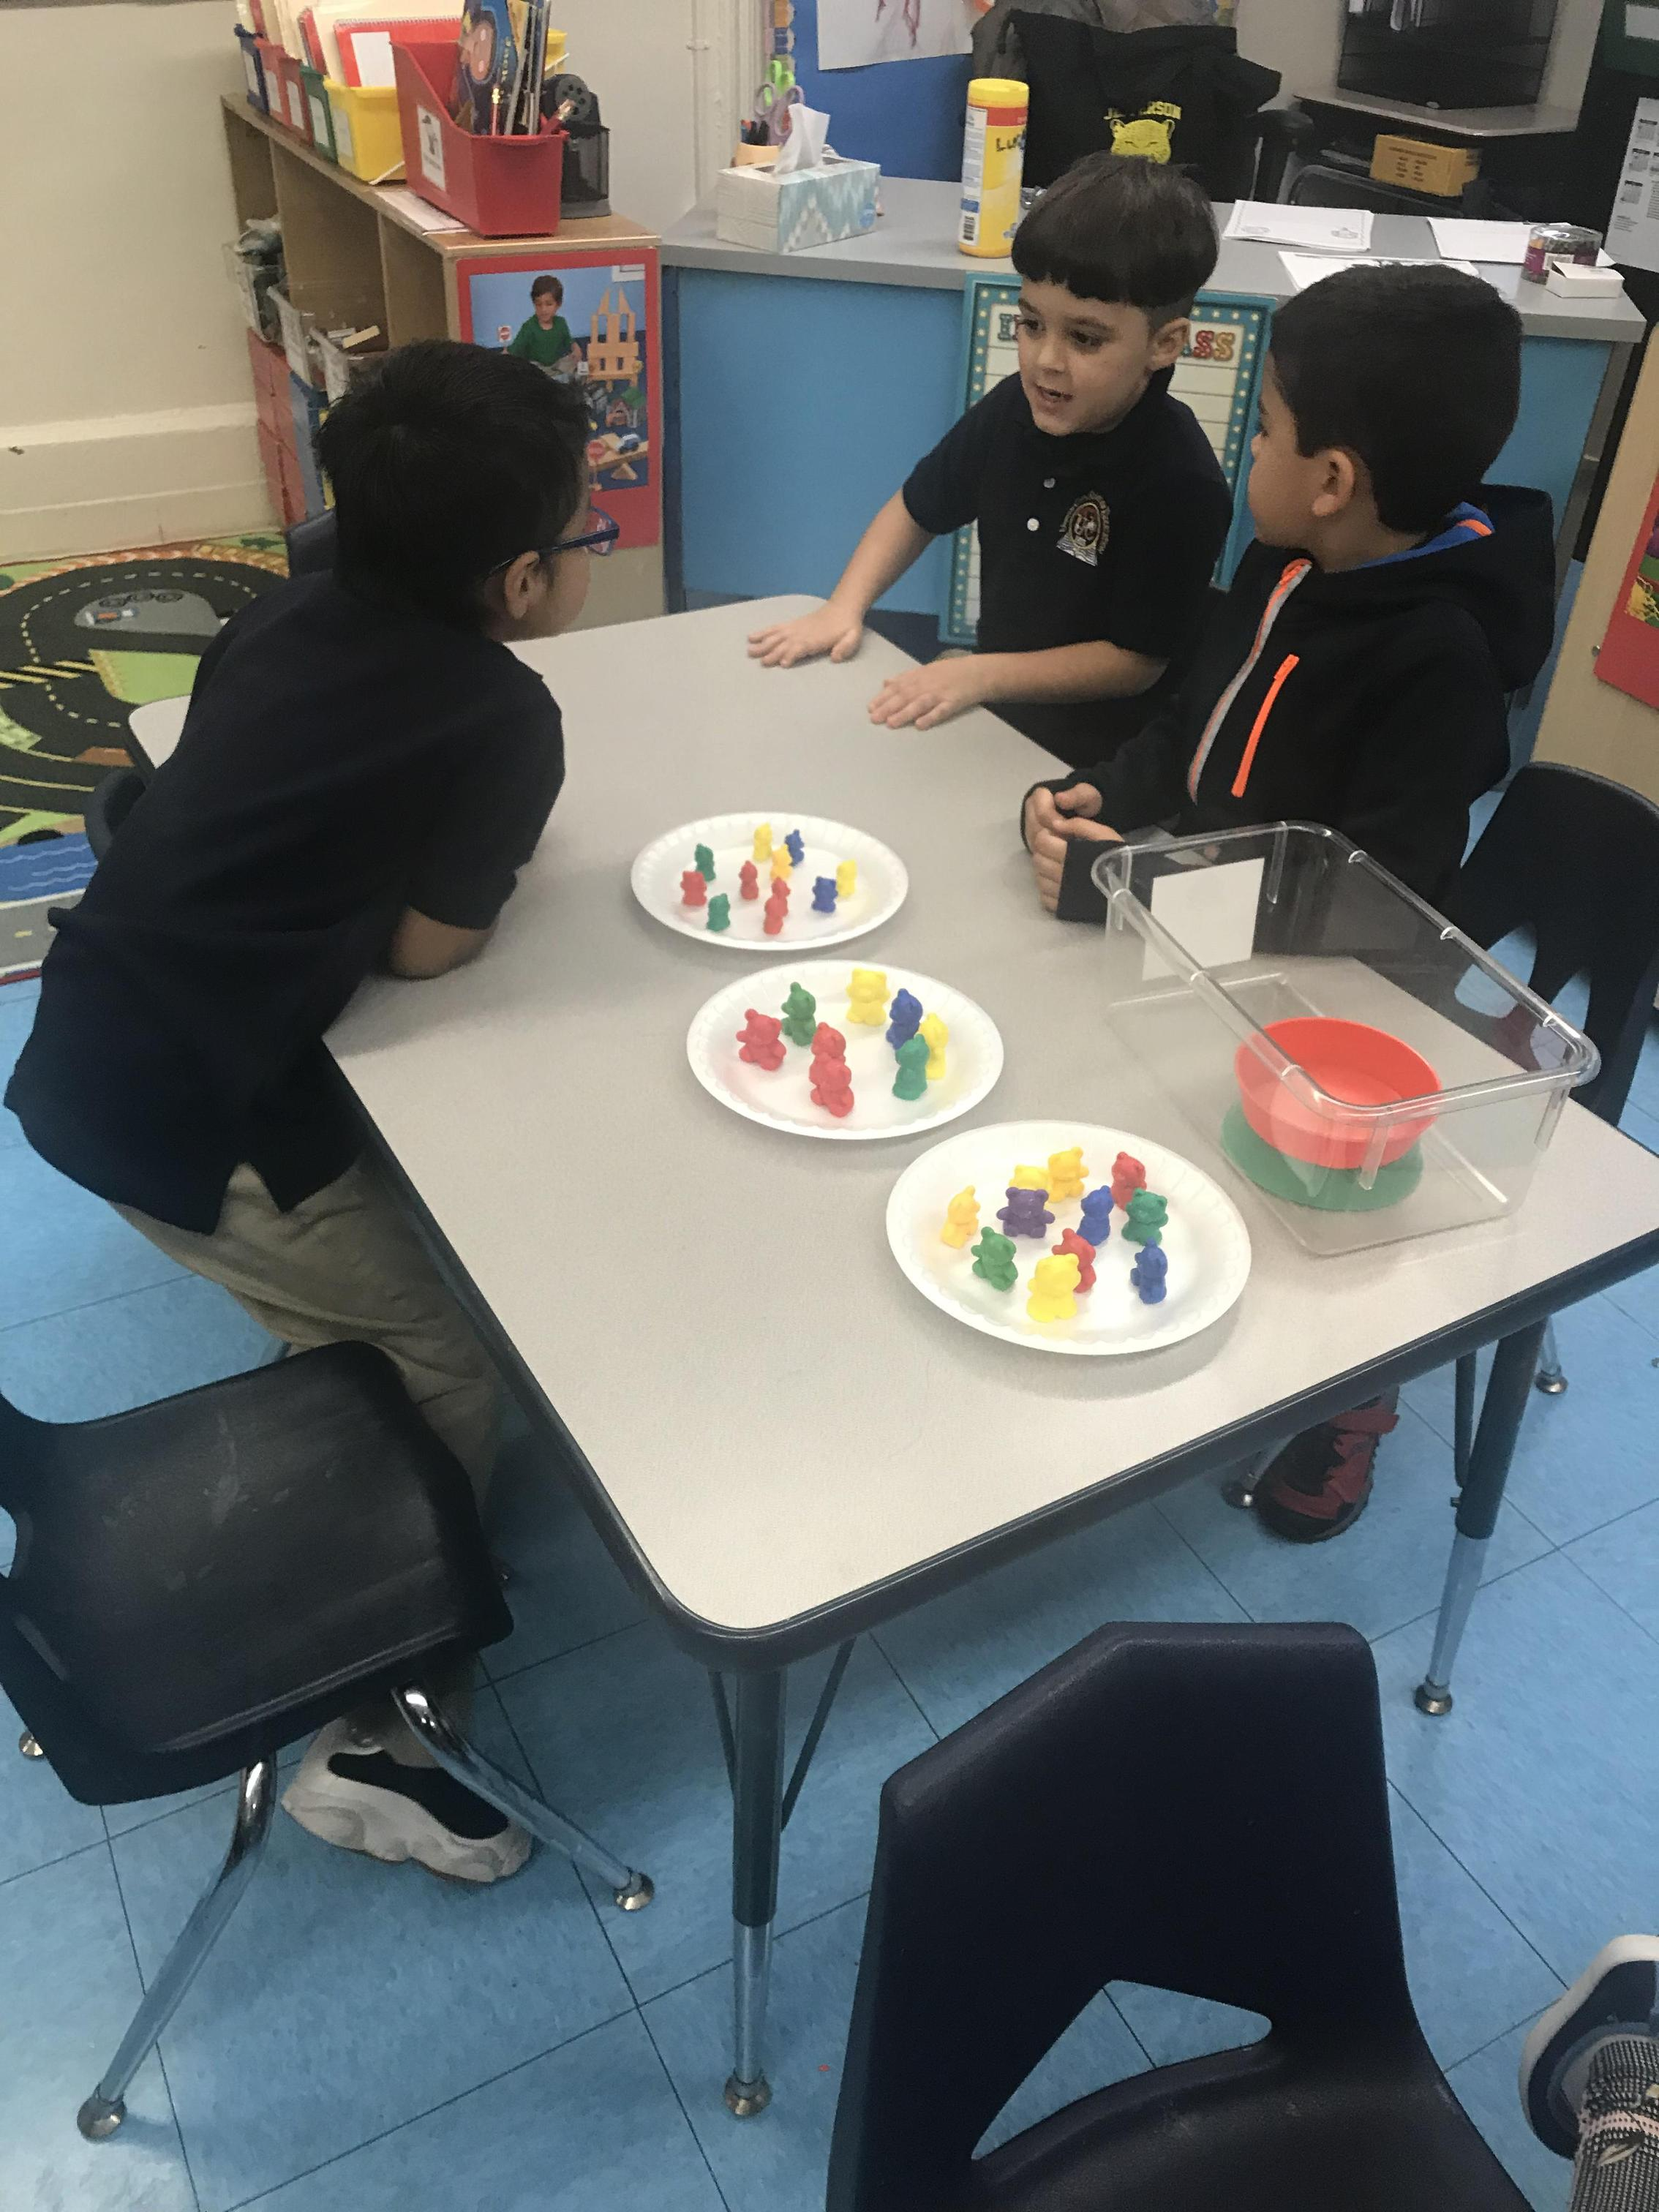 Sorting activity